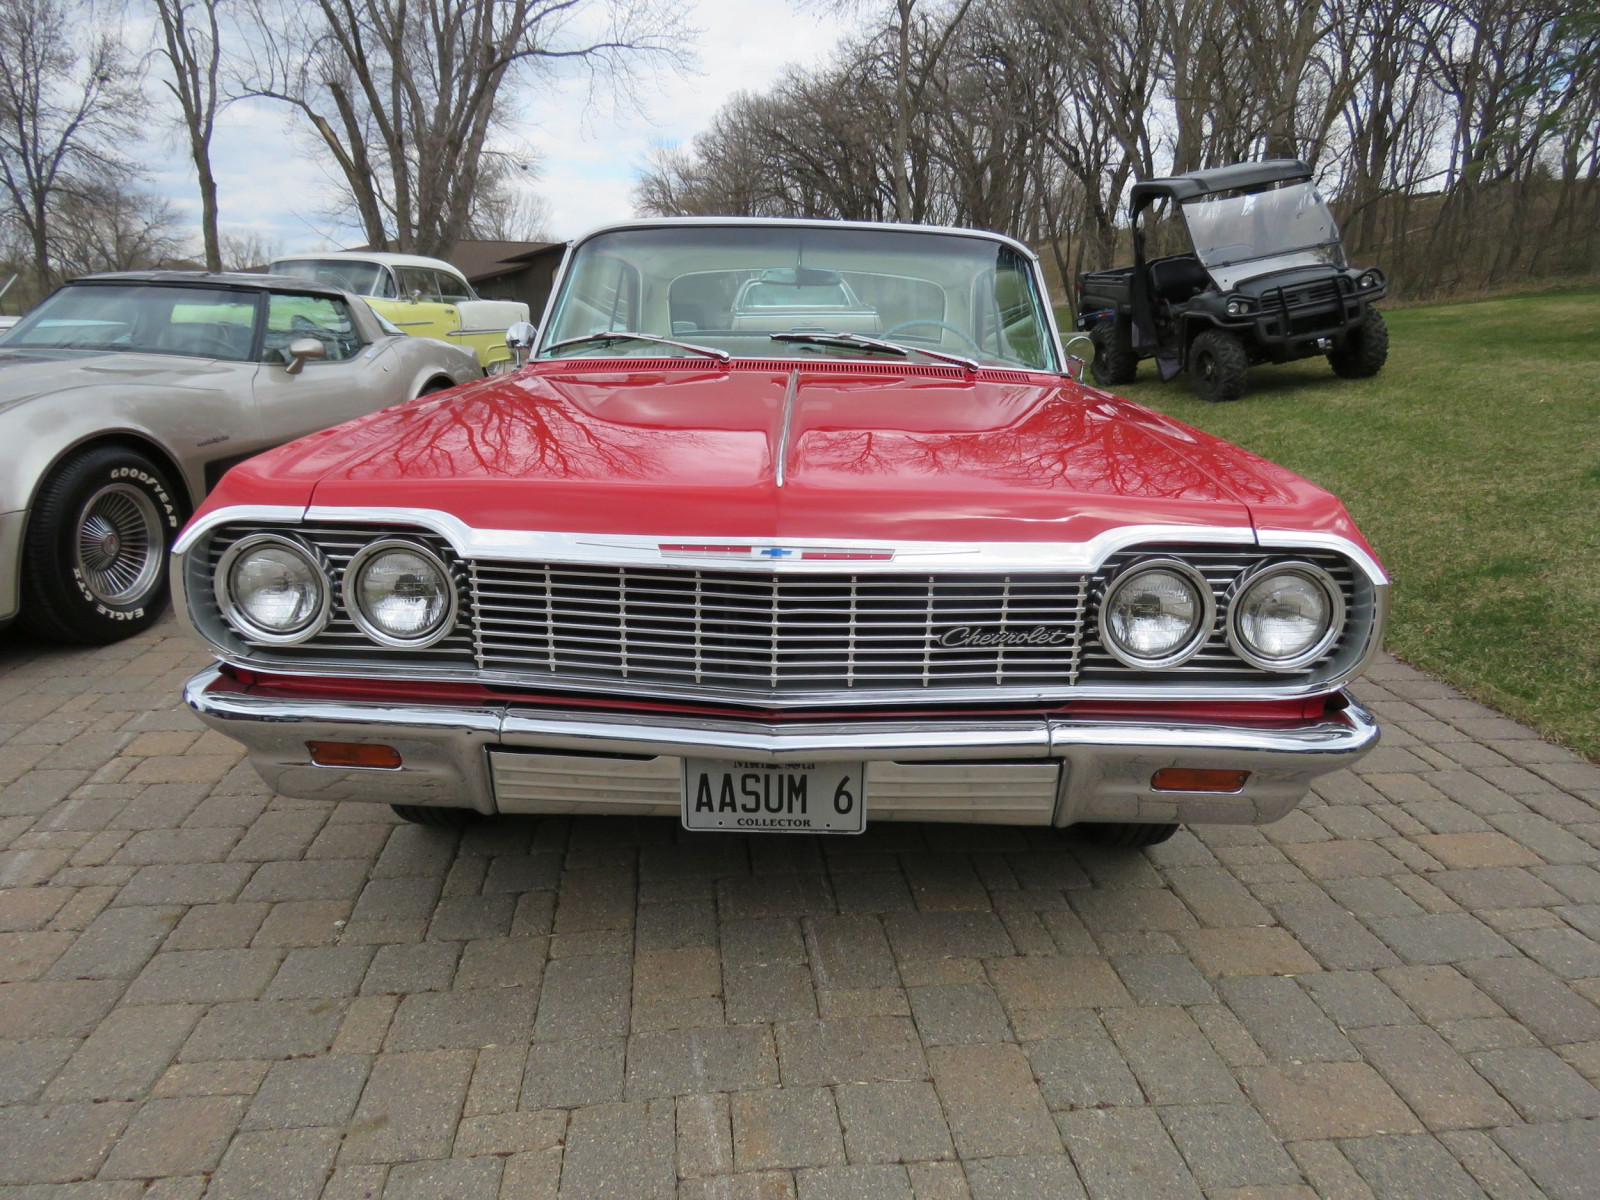 1964 Chevrolet Impala SS 2dr HT - Image 2